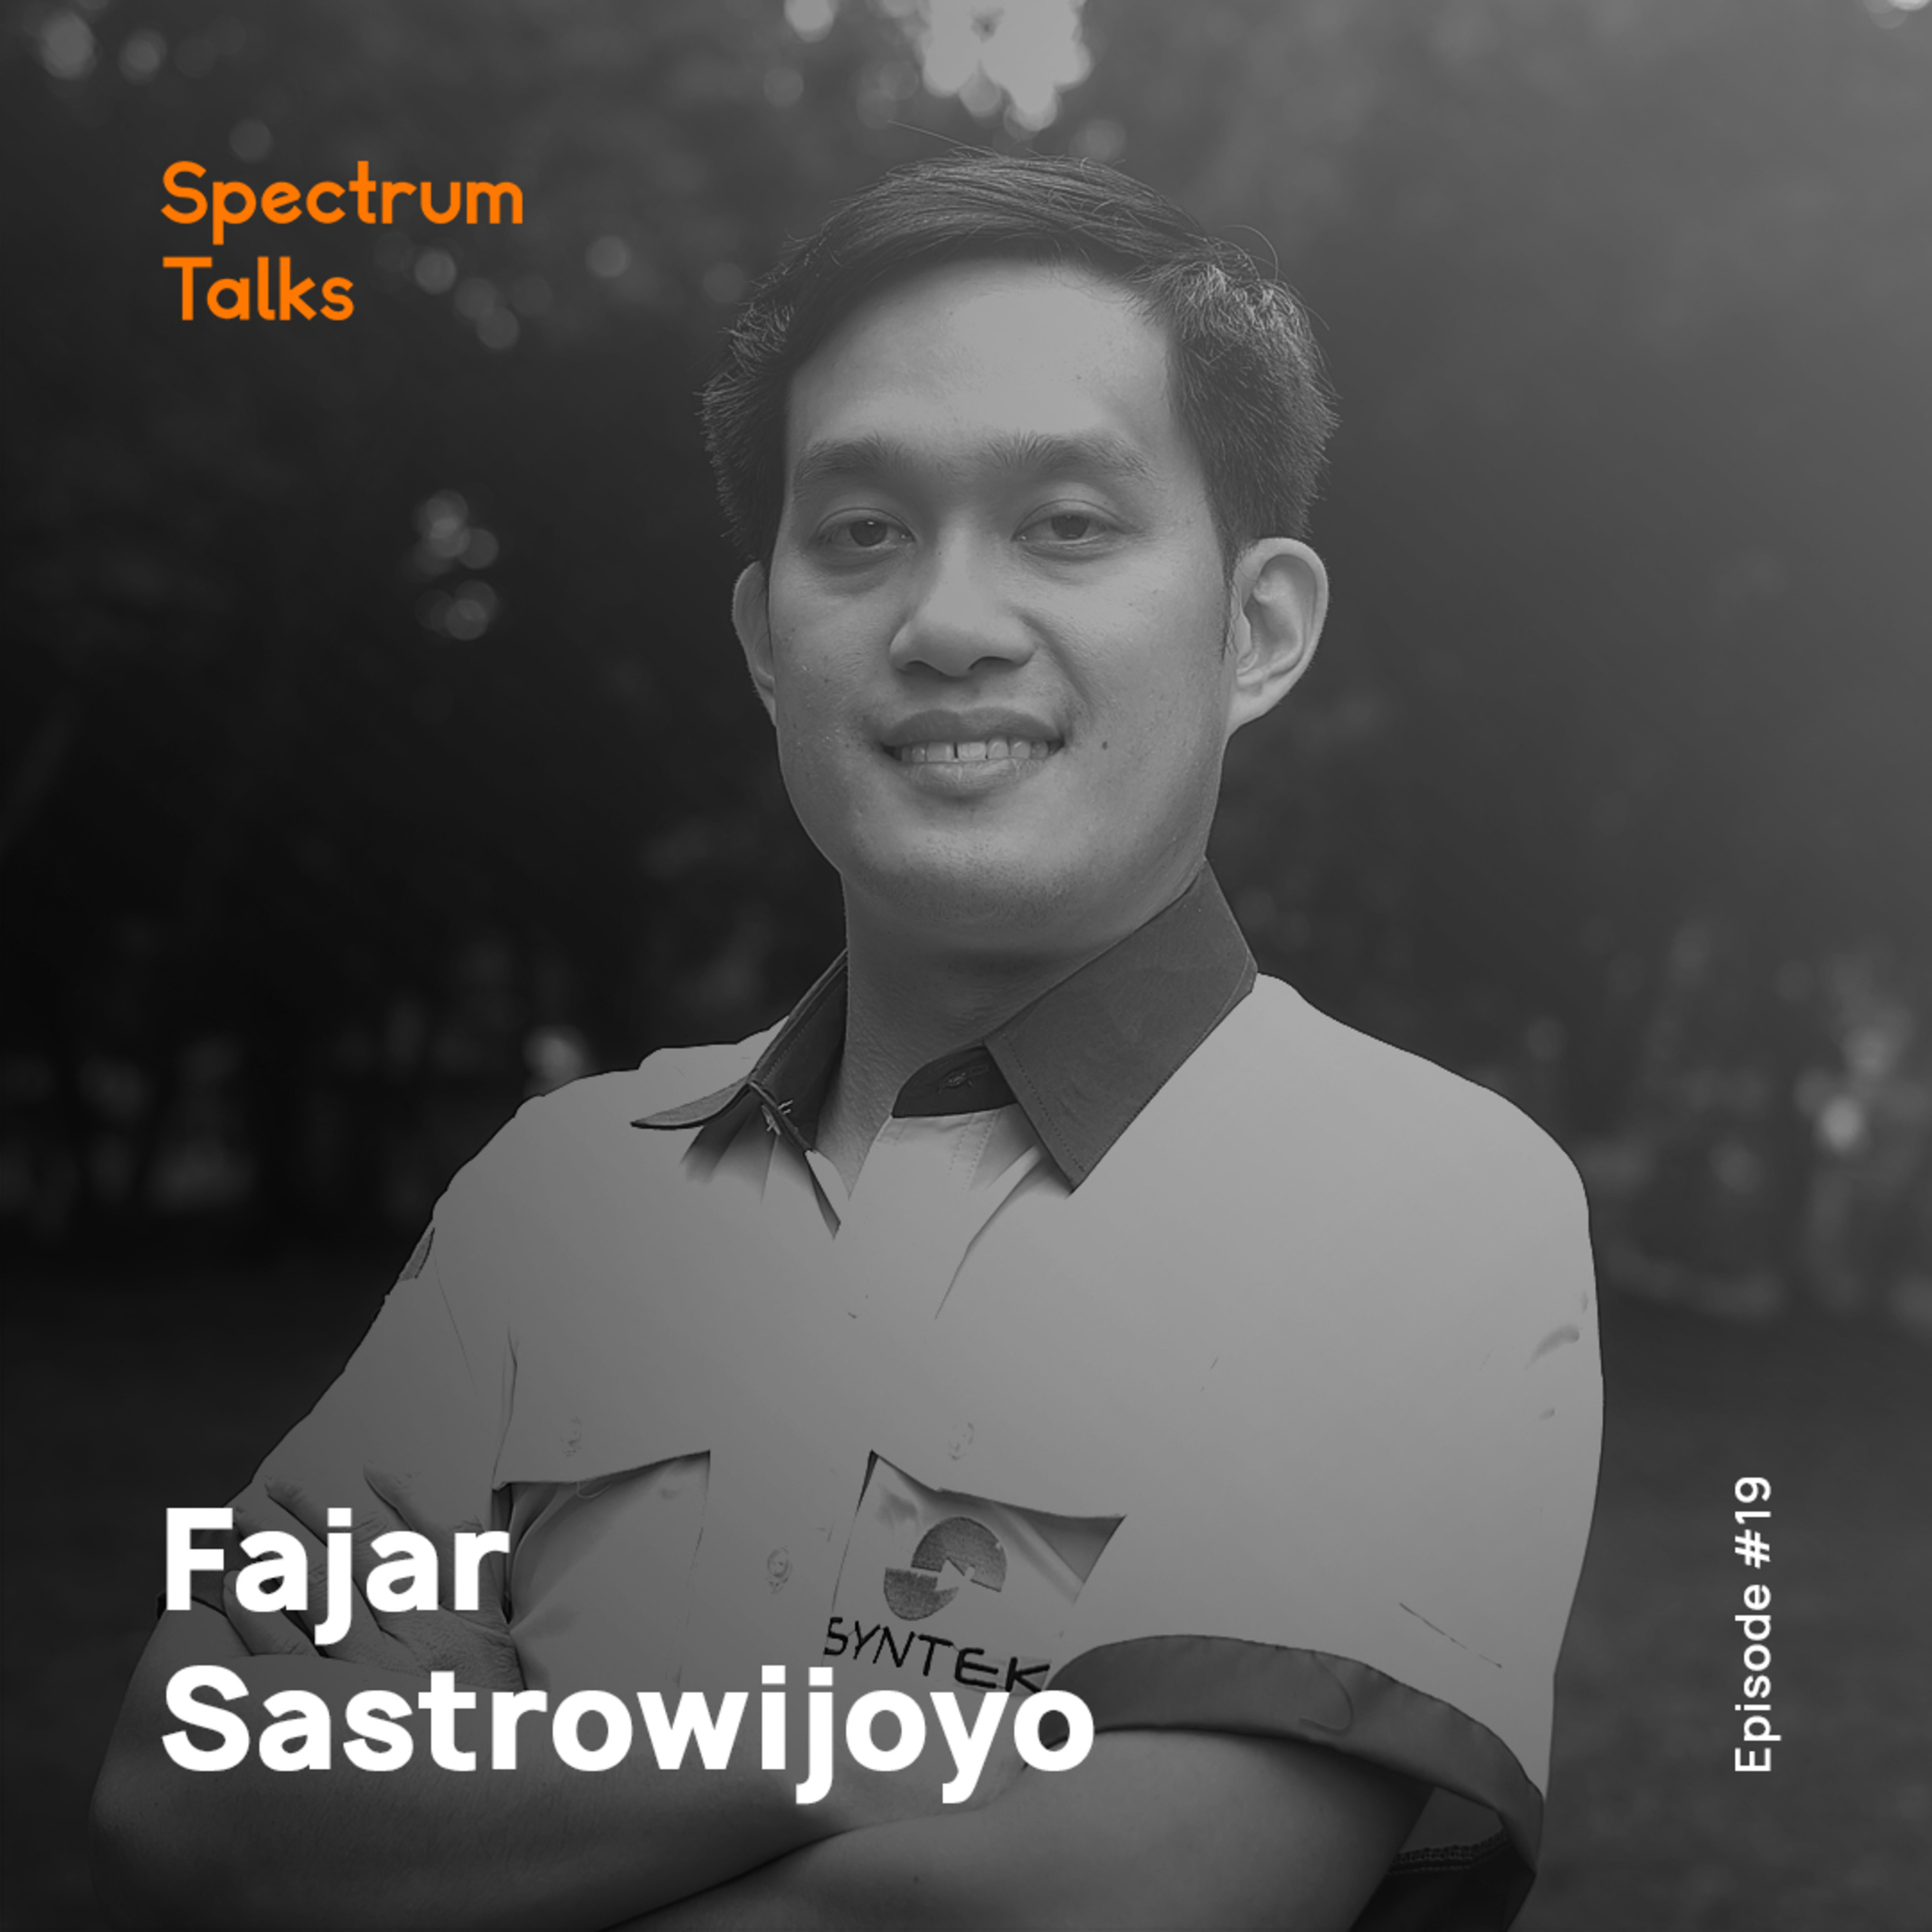 #19: Fajar Sastrowijoyo — Co-founder & CEO of Syntek Energy & Control